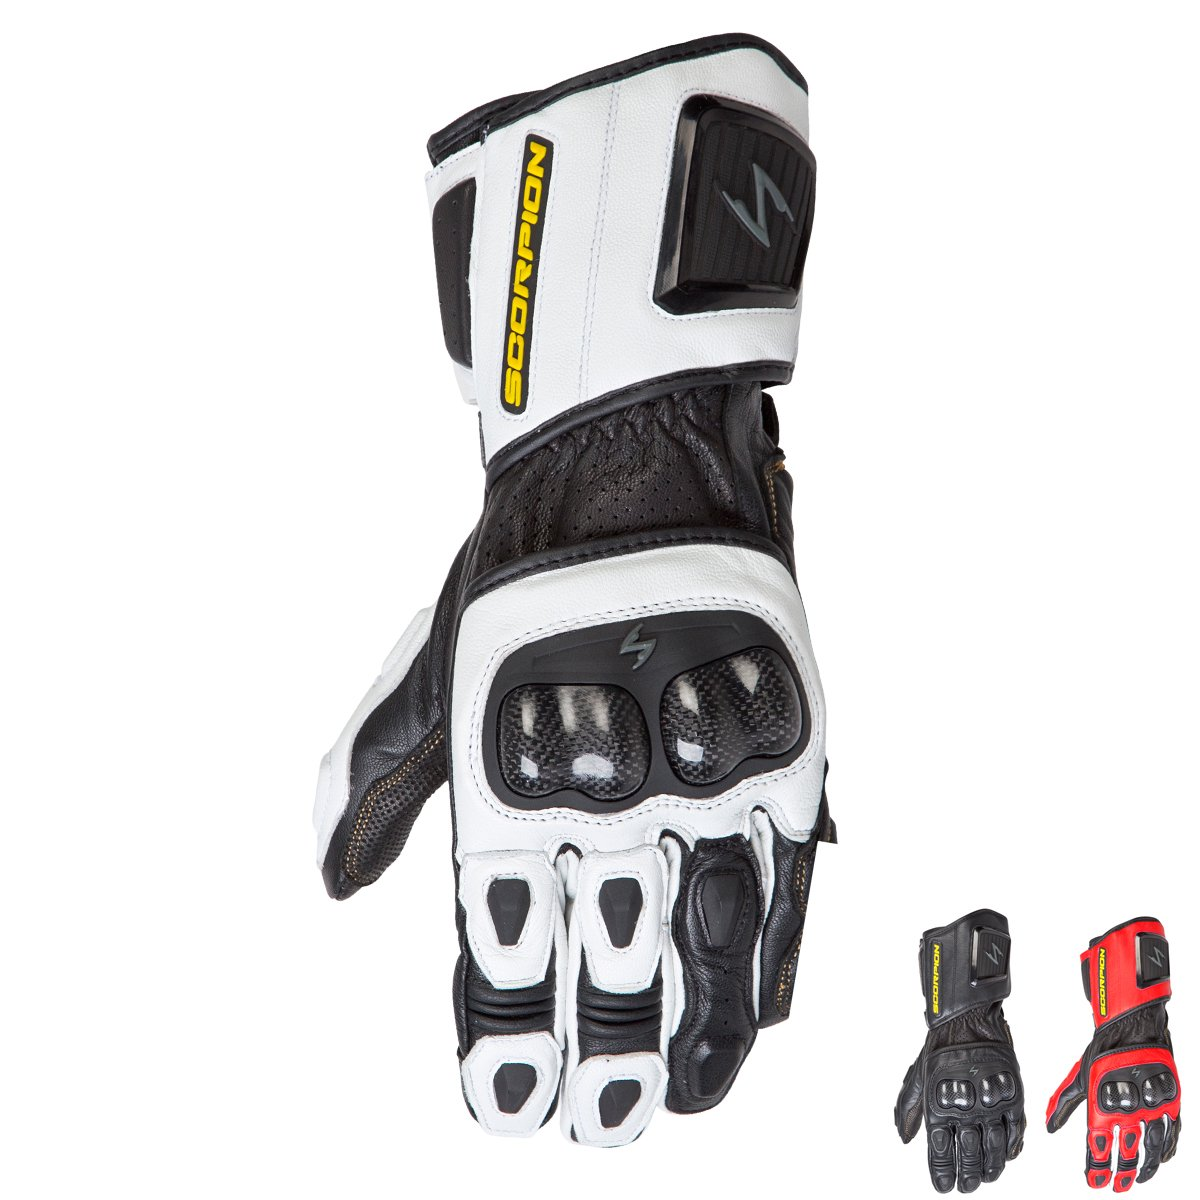 ScorpionExo SG3 MKII Men's Long Gauntlet Sport Gloves (White, X-Large) by Scorpion